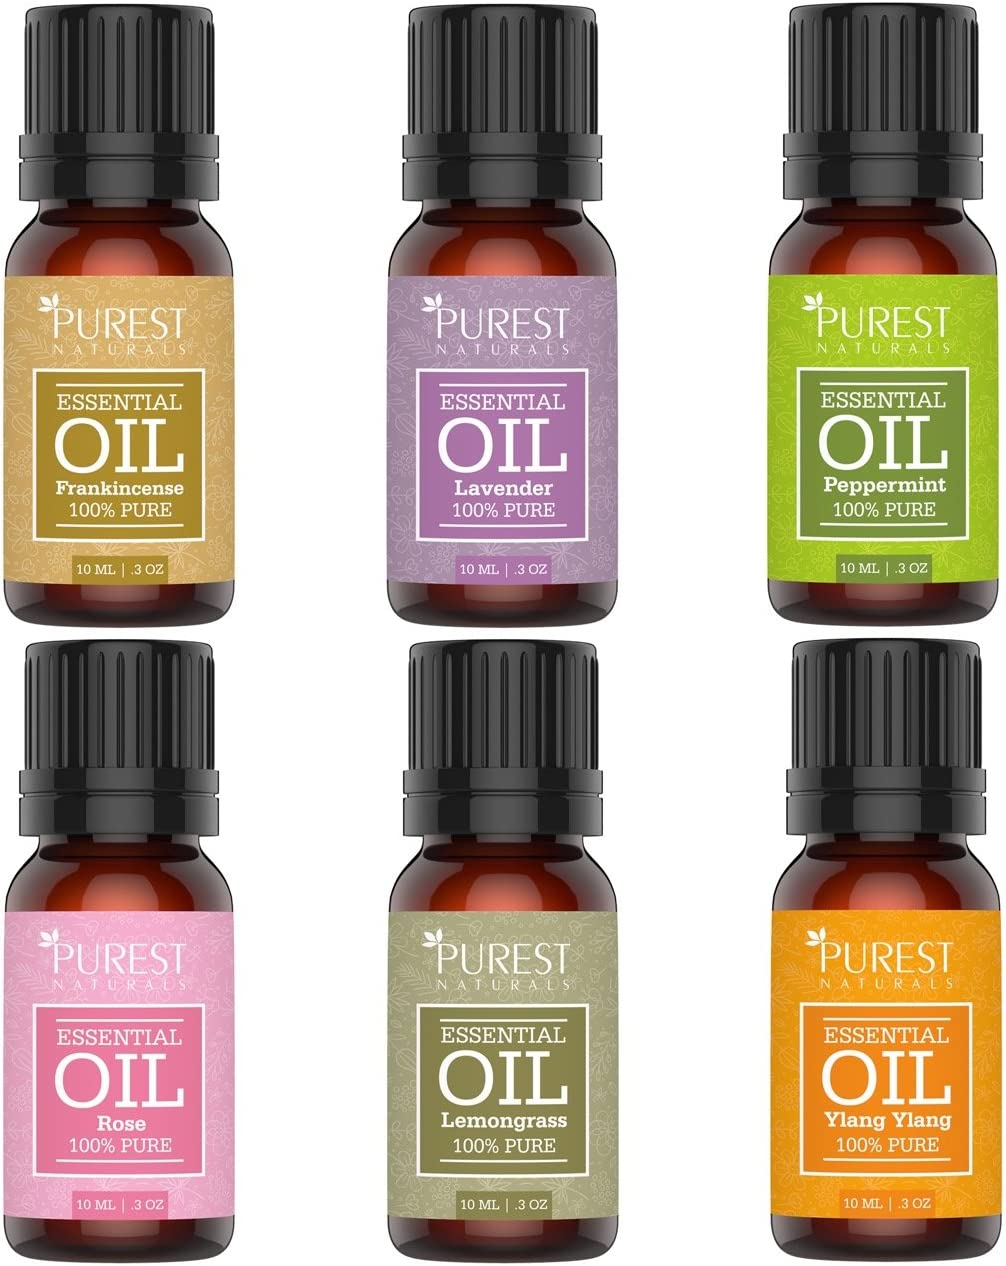 Purest Naturals Aromatherapy Daily bargain sale Top 6 Essential Oils 100 Set Sales for sale Gift -